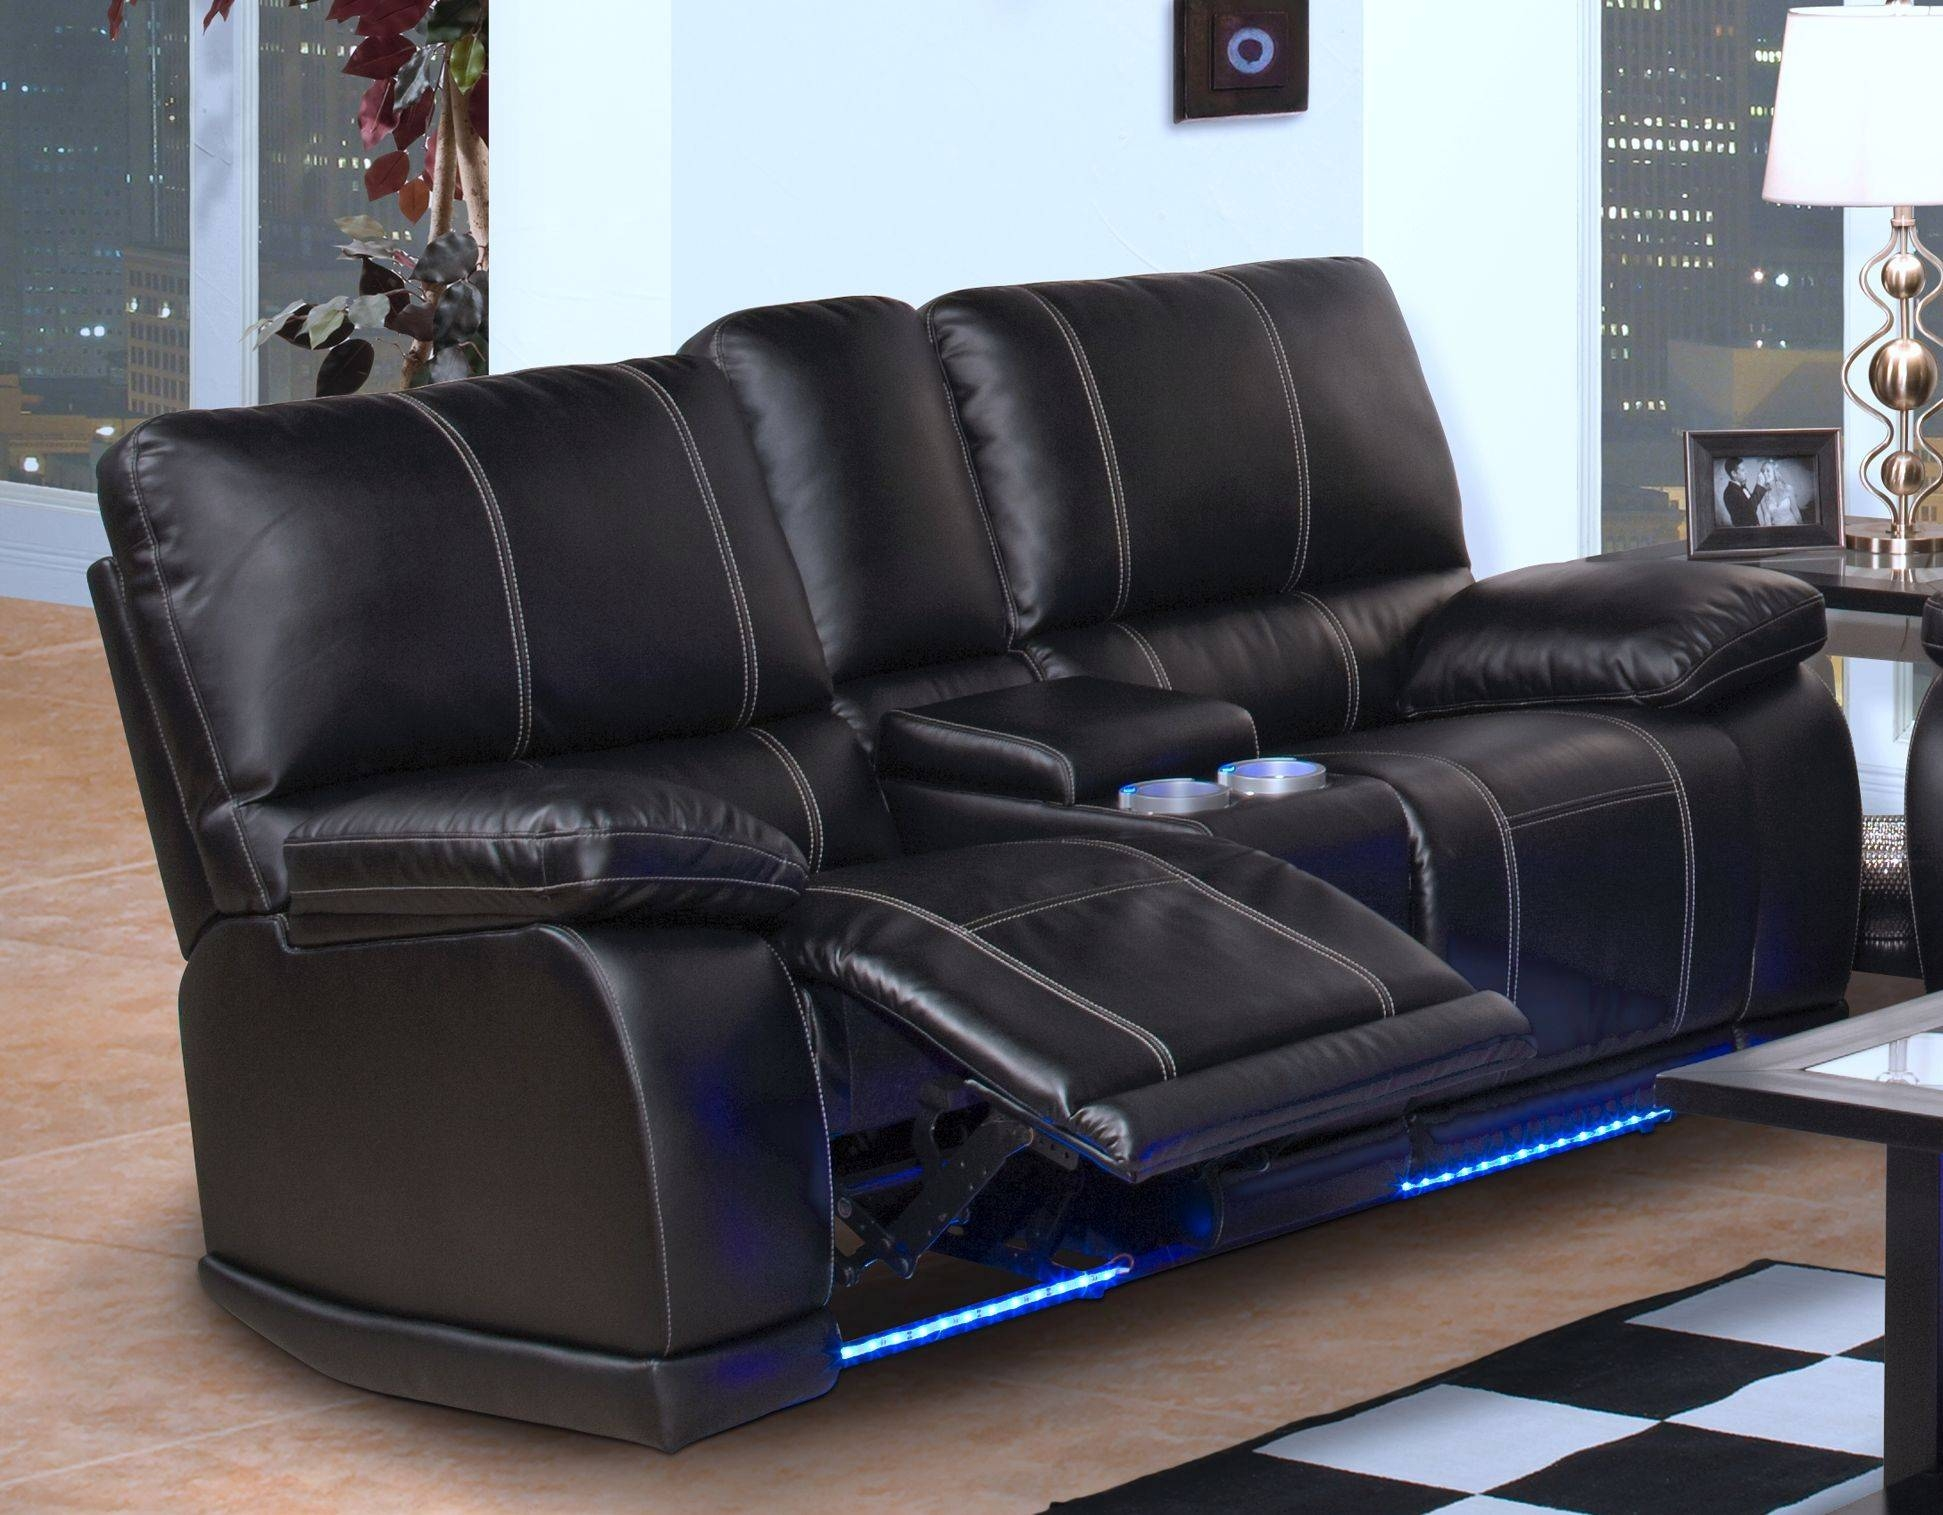 Furniture : Leather Sofa Cheap Recliner Sofas Beautiful Black regarding Black Leather Sofas and Loveseats (Image 8 of 15)